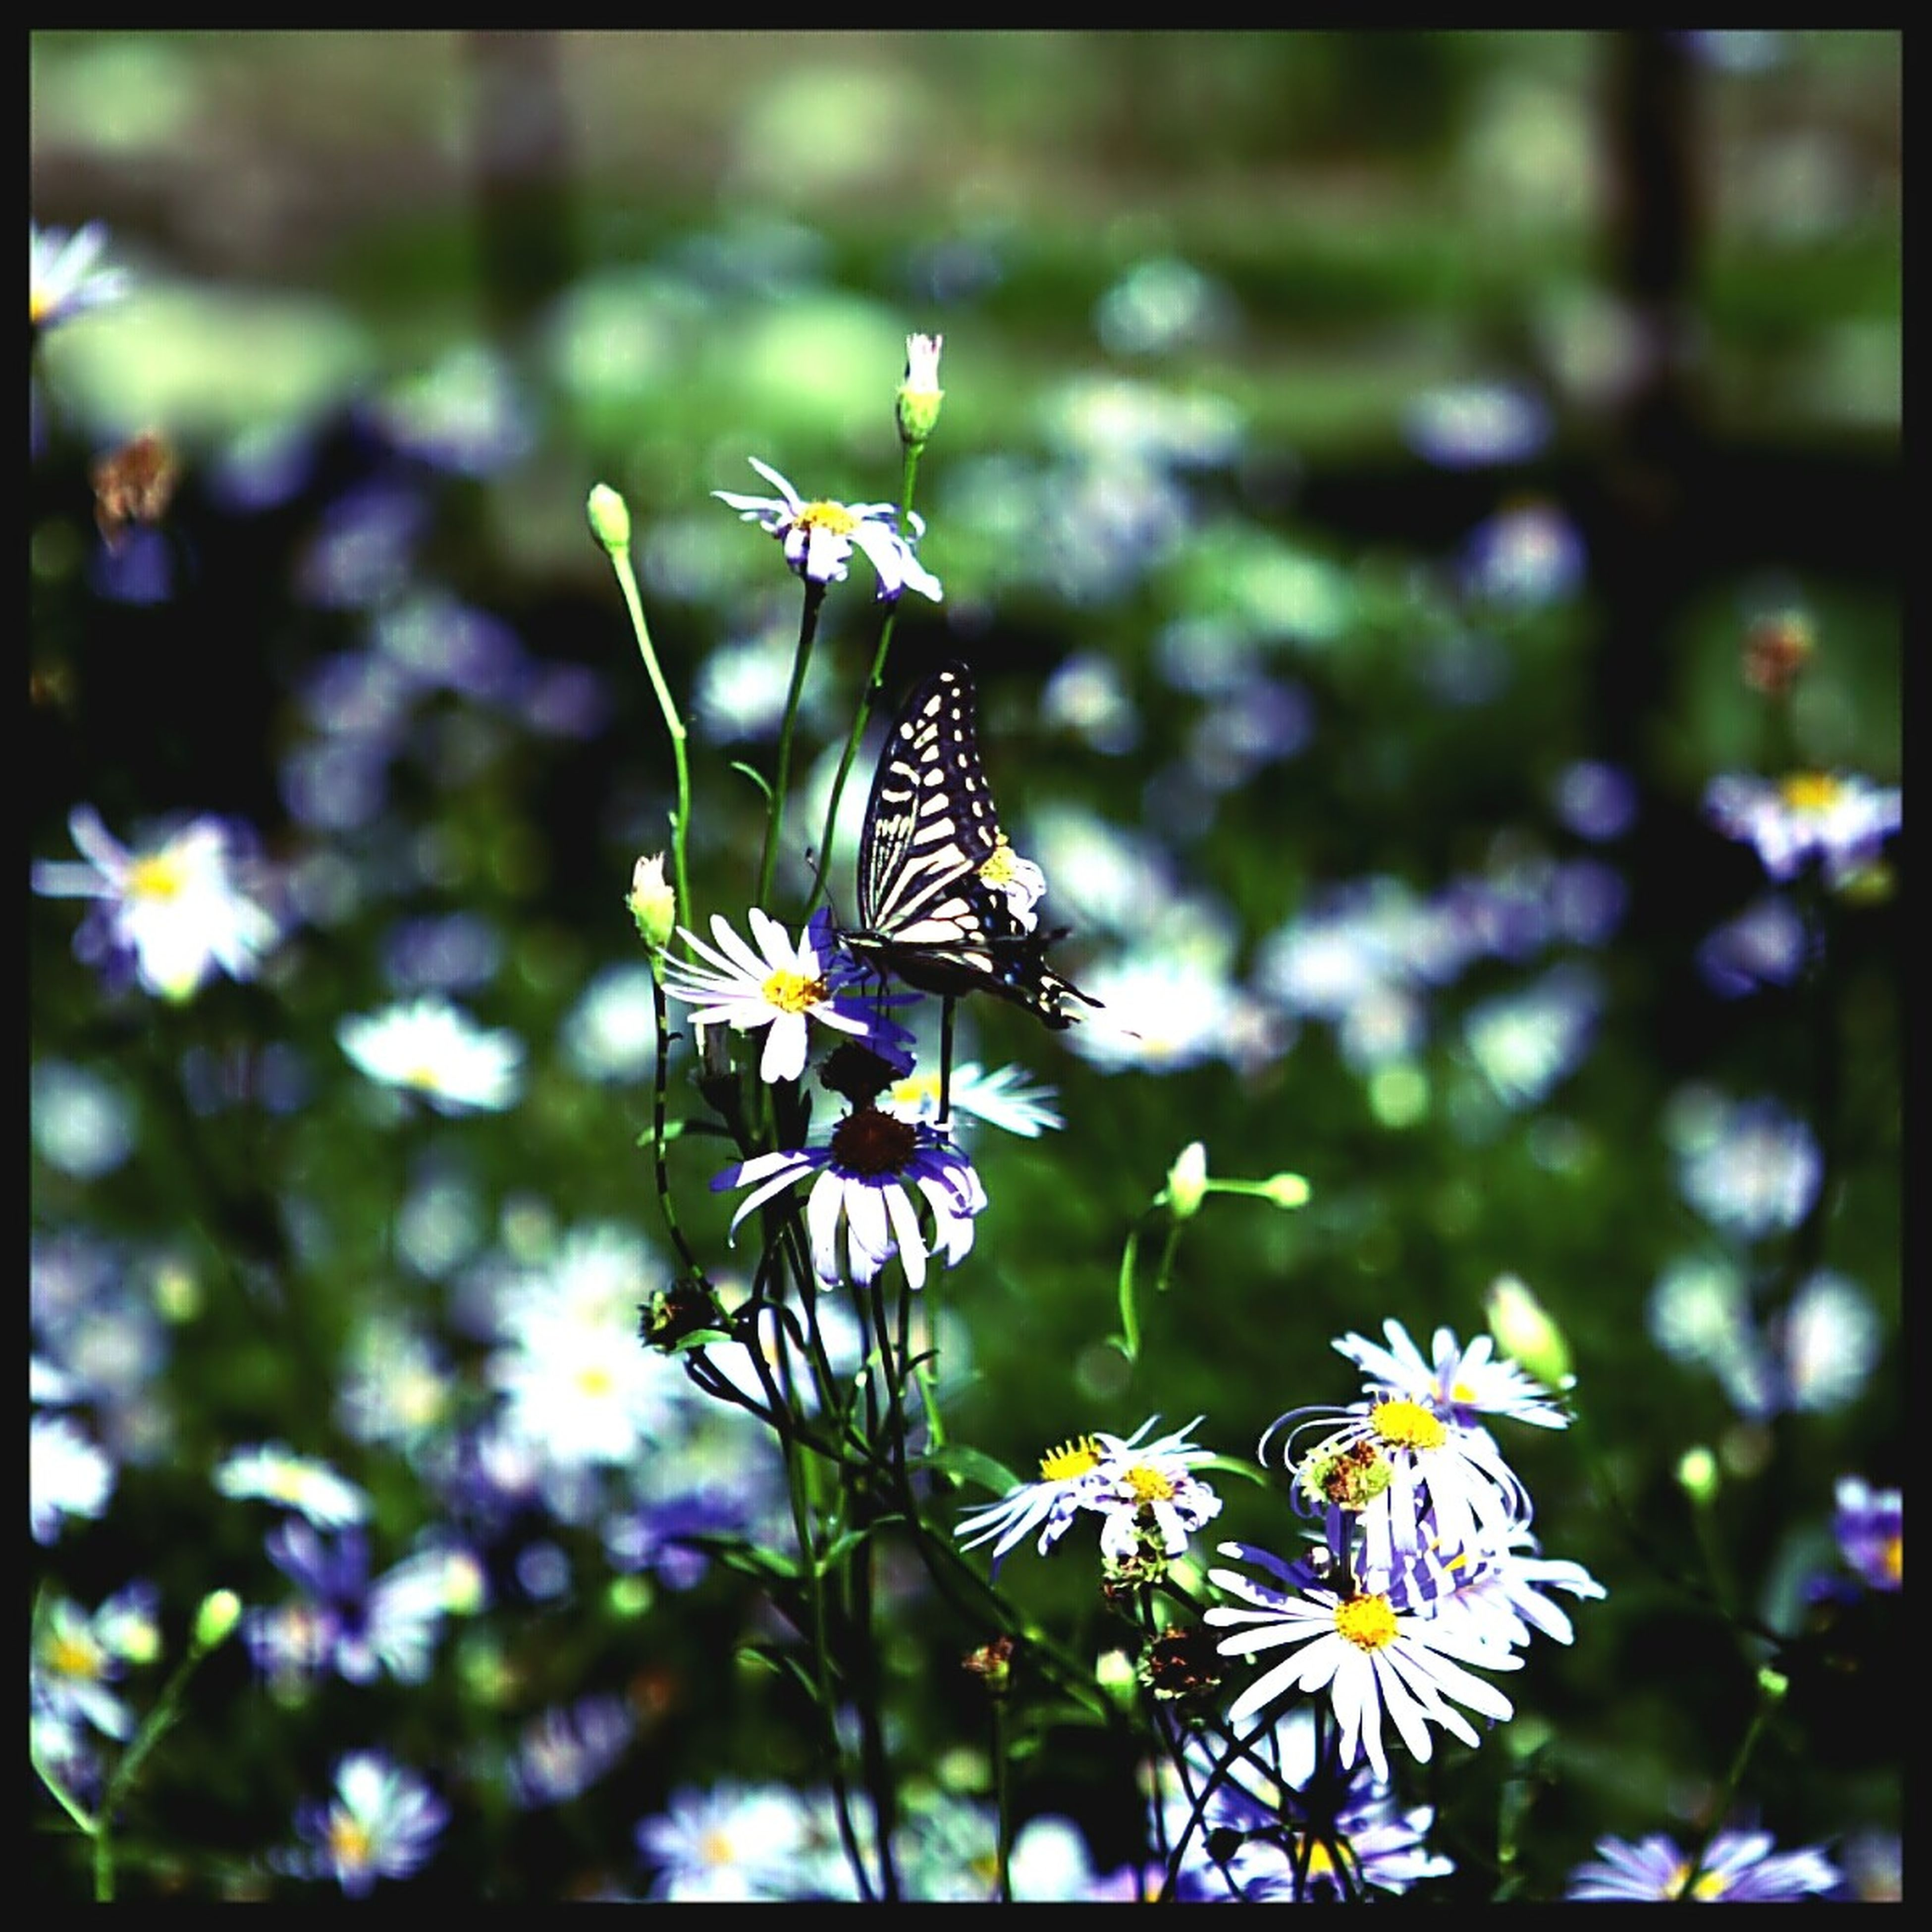 flower, one animal, animals in the wild, animal themes, insect, wildlife, focus on foreground, fragility, butterfly - insect, transfer print, butterfly, beauty in nature, plant, petal, nature, freshness, auto post production filter, close-up, growth, pollination